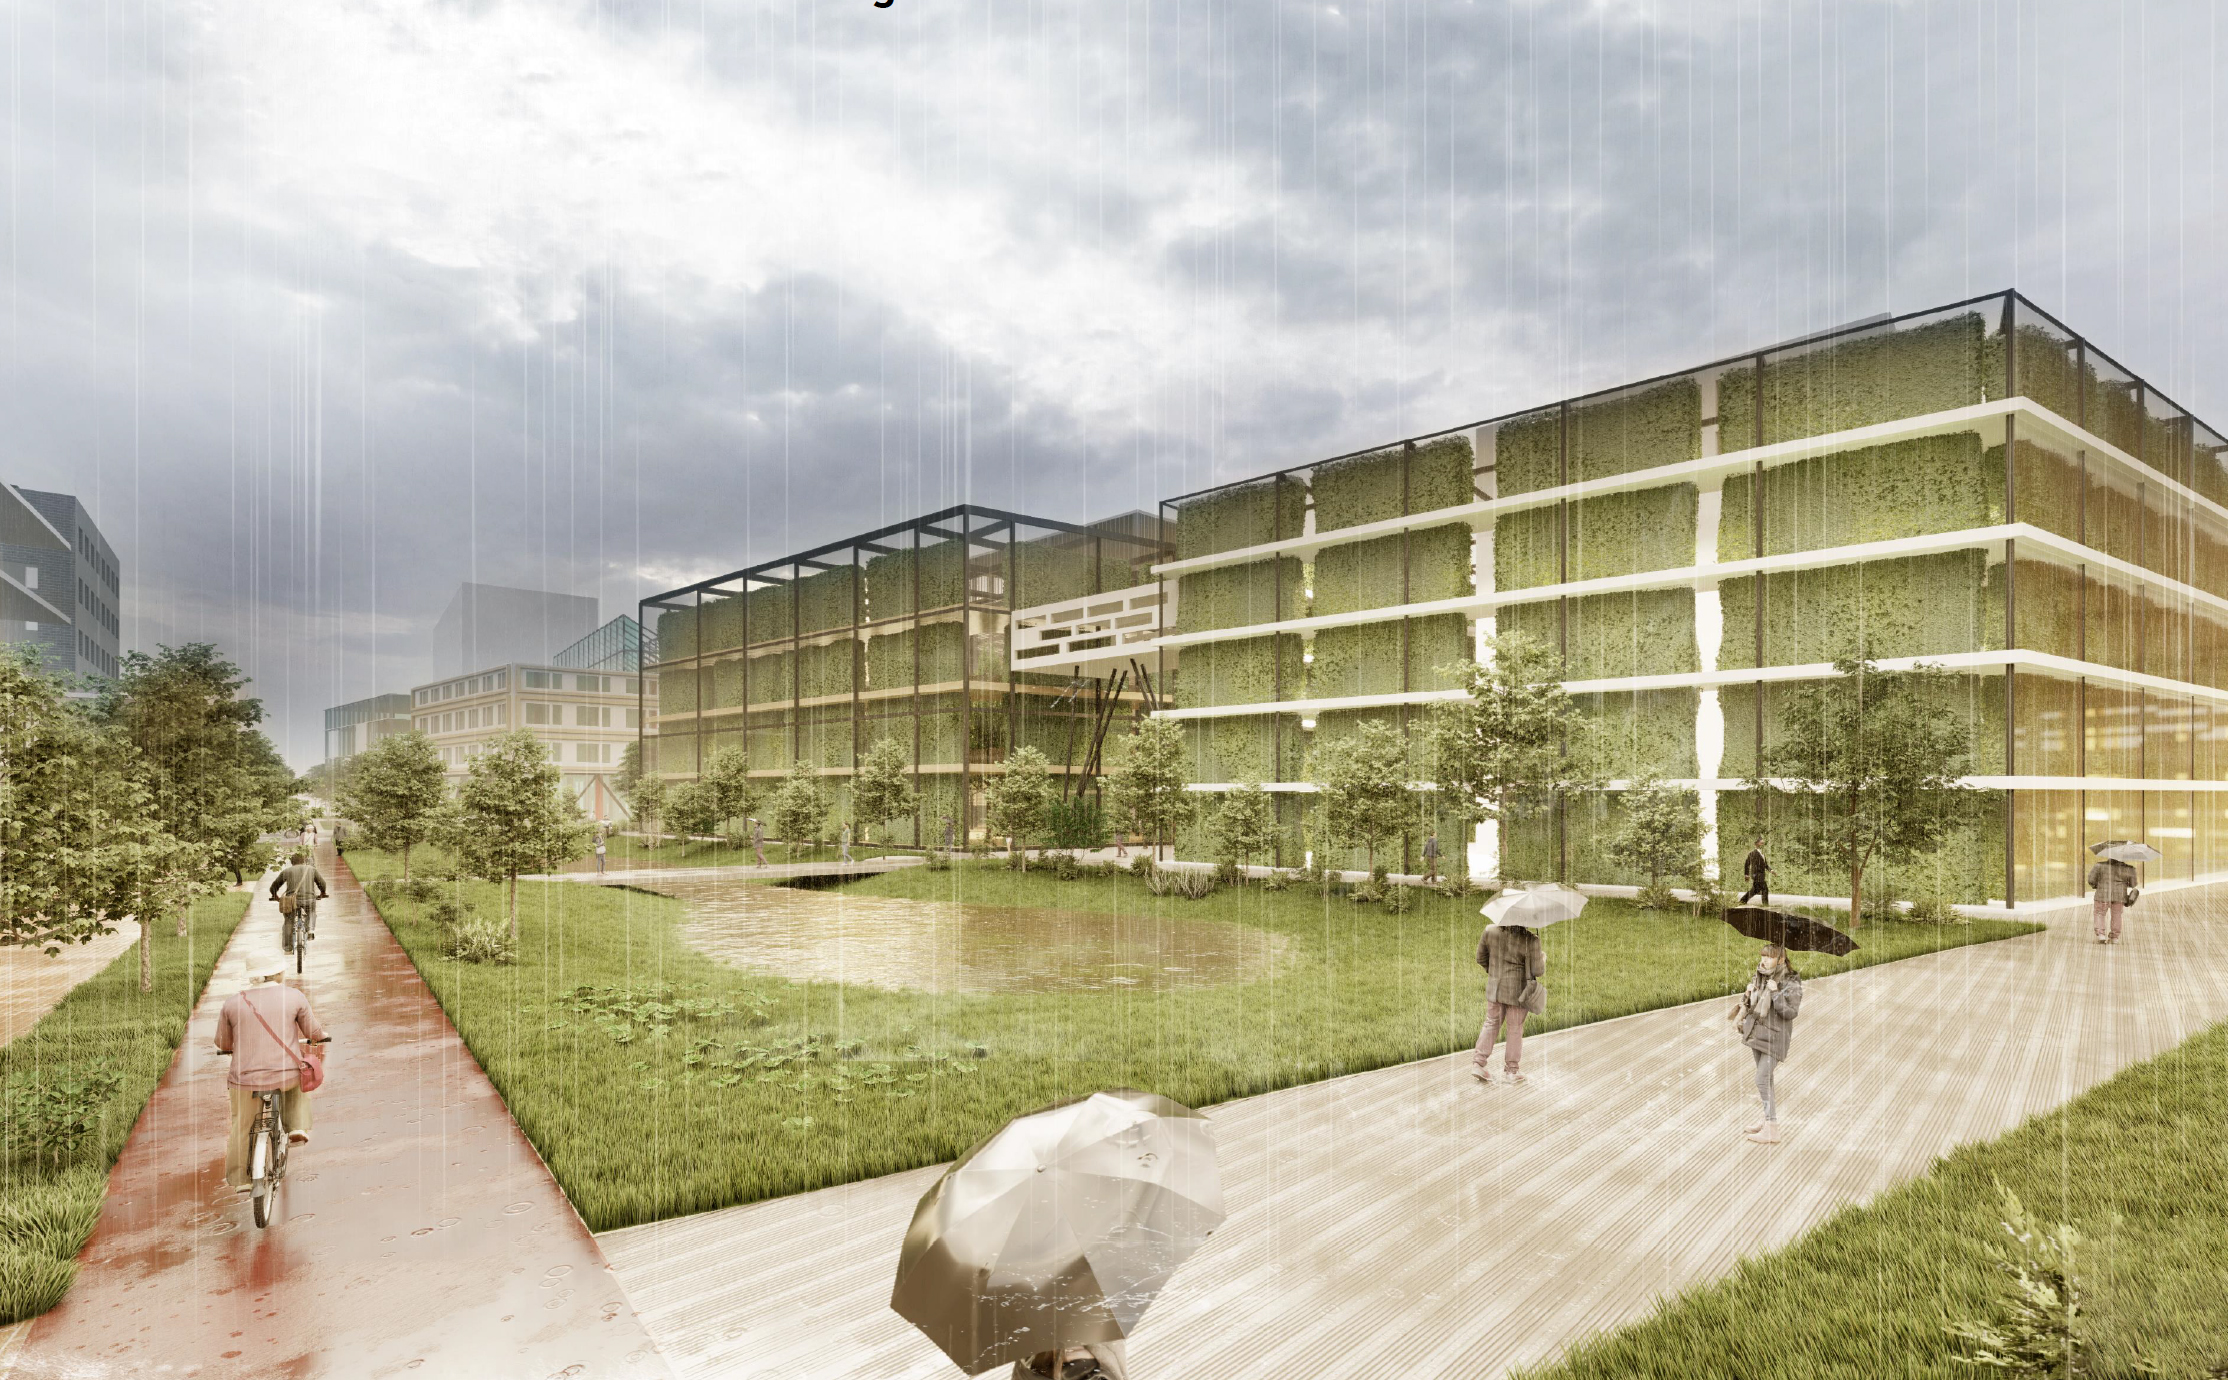 Winning proposal for Kansas City, designed by Fusion team for ULI Hines Competition.